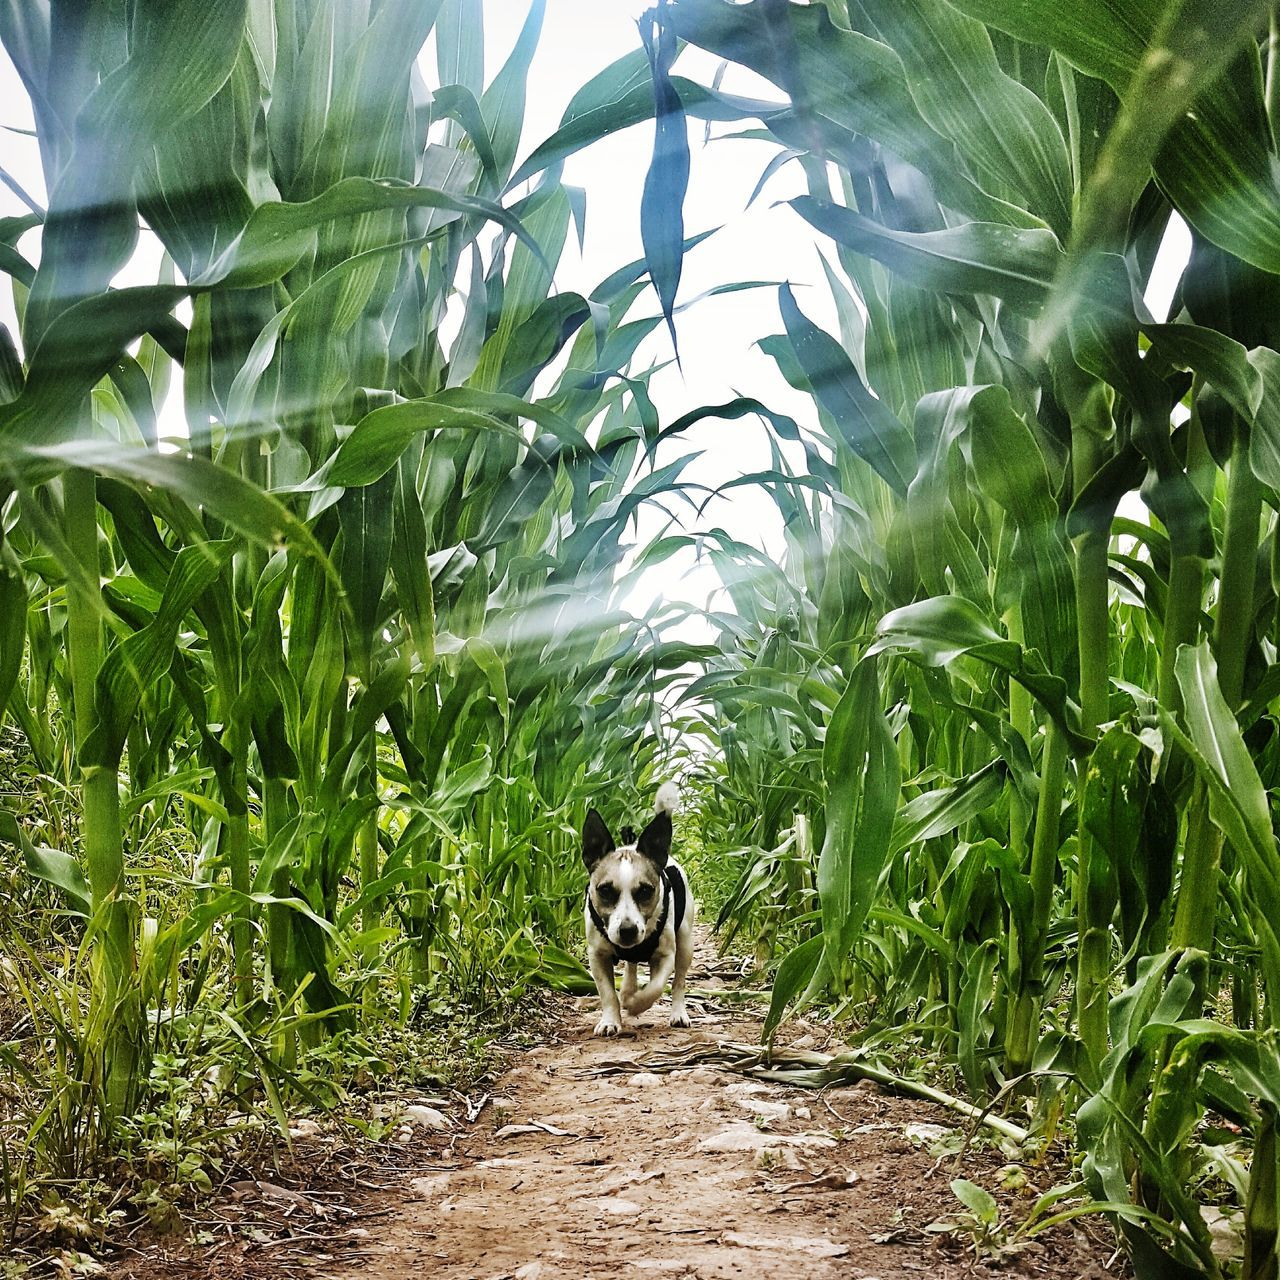 Jack russell in the maize Animal Themes One Animal JAck Russel Domestic Animals Dog Pets mAize s Weetcorn